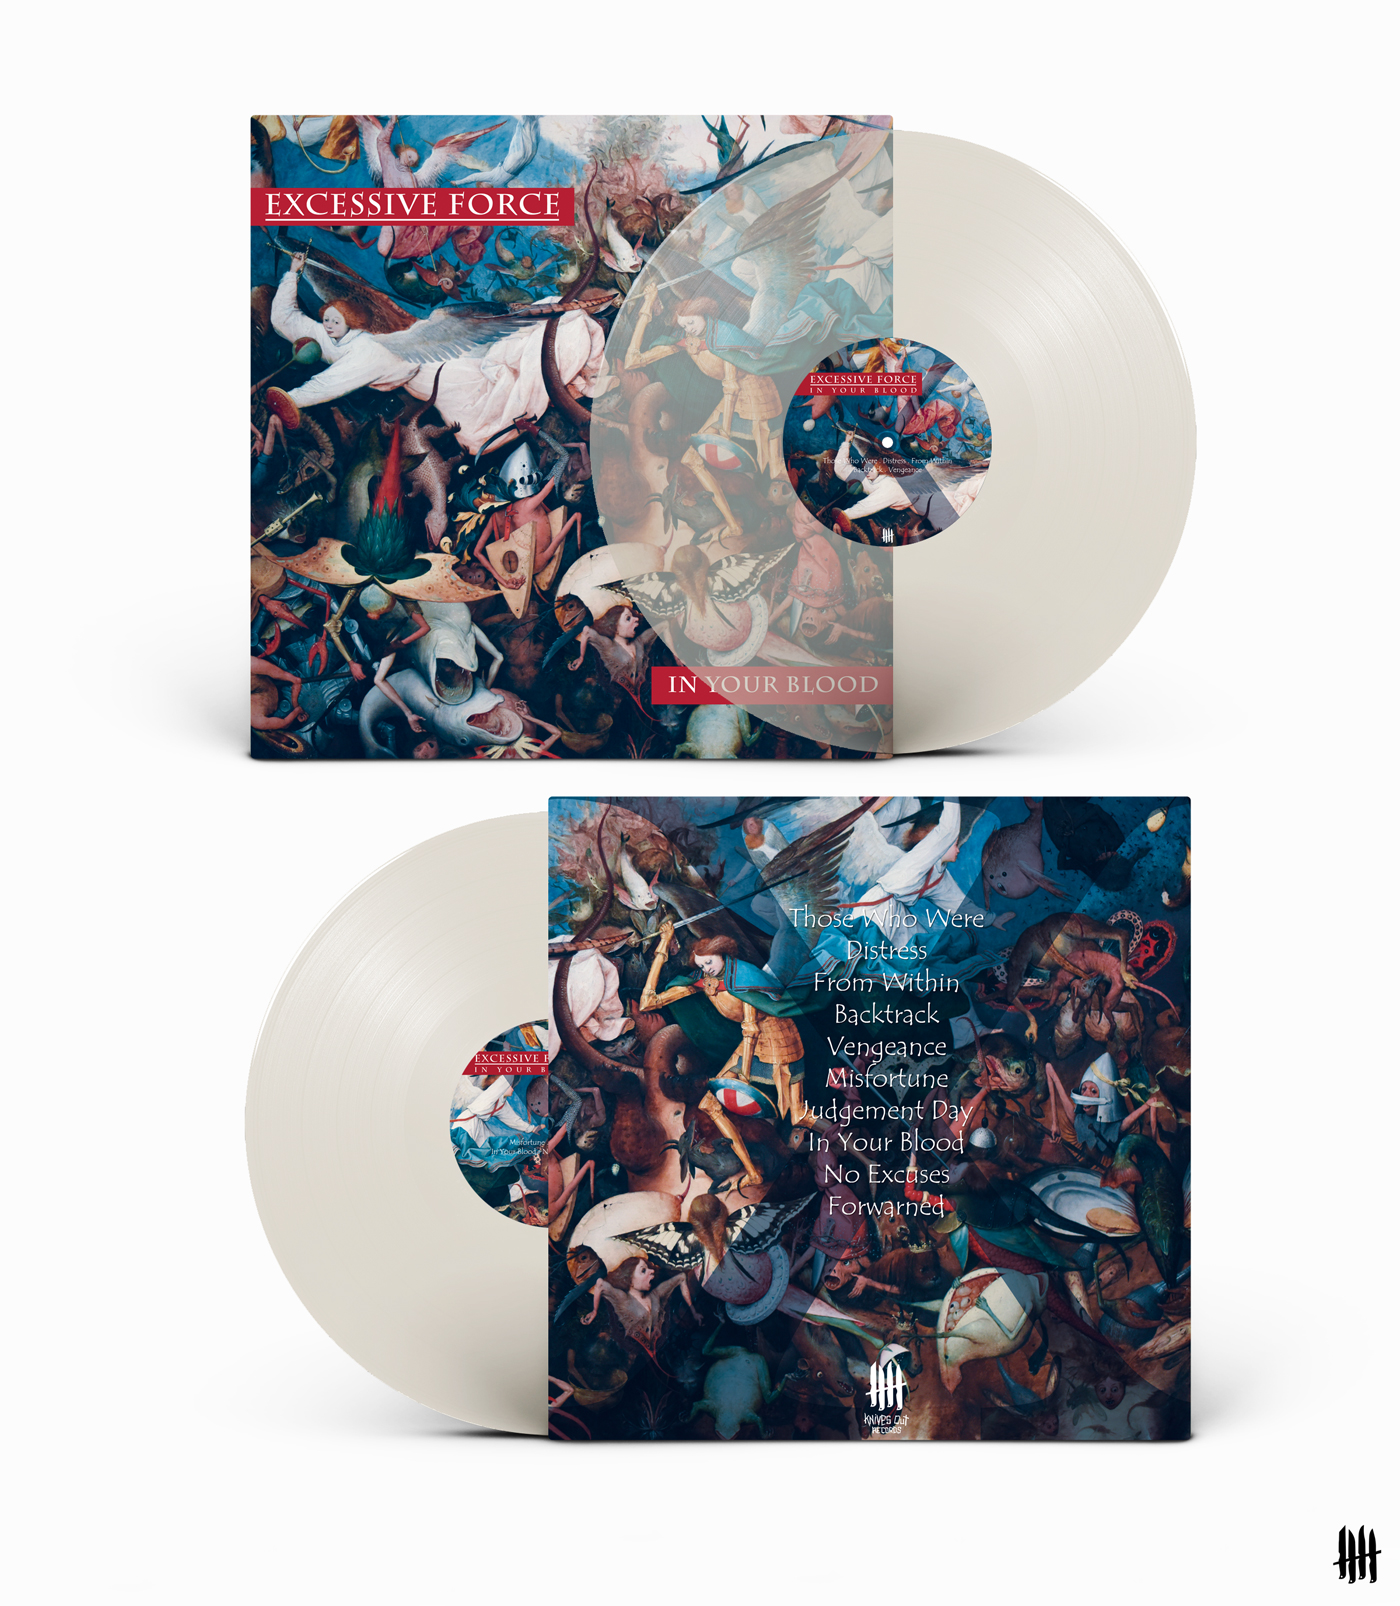 EXCESSIVE FORCE In Your Blood clear vinyl